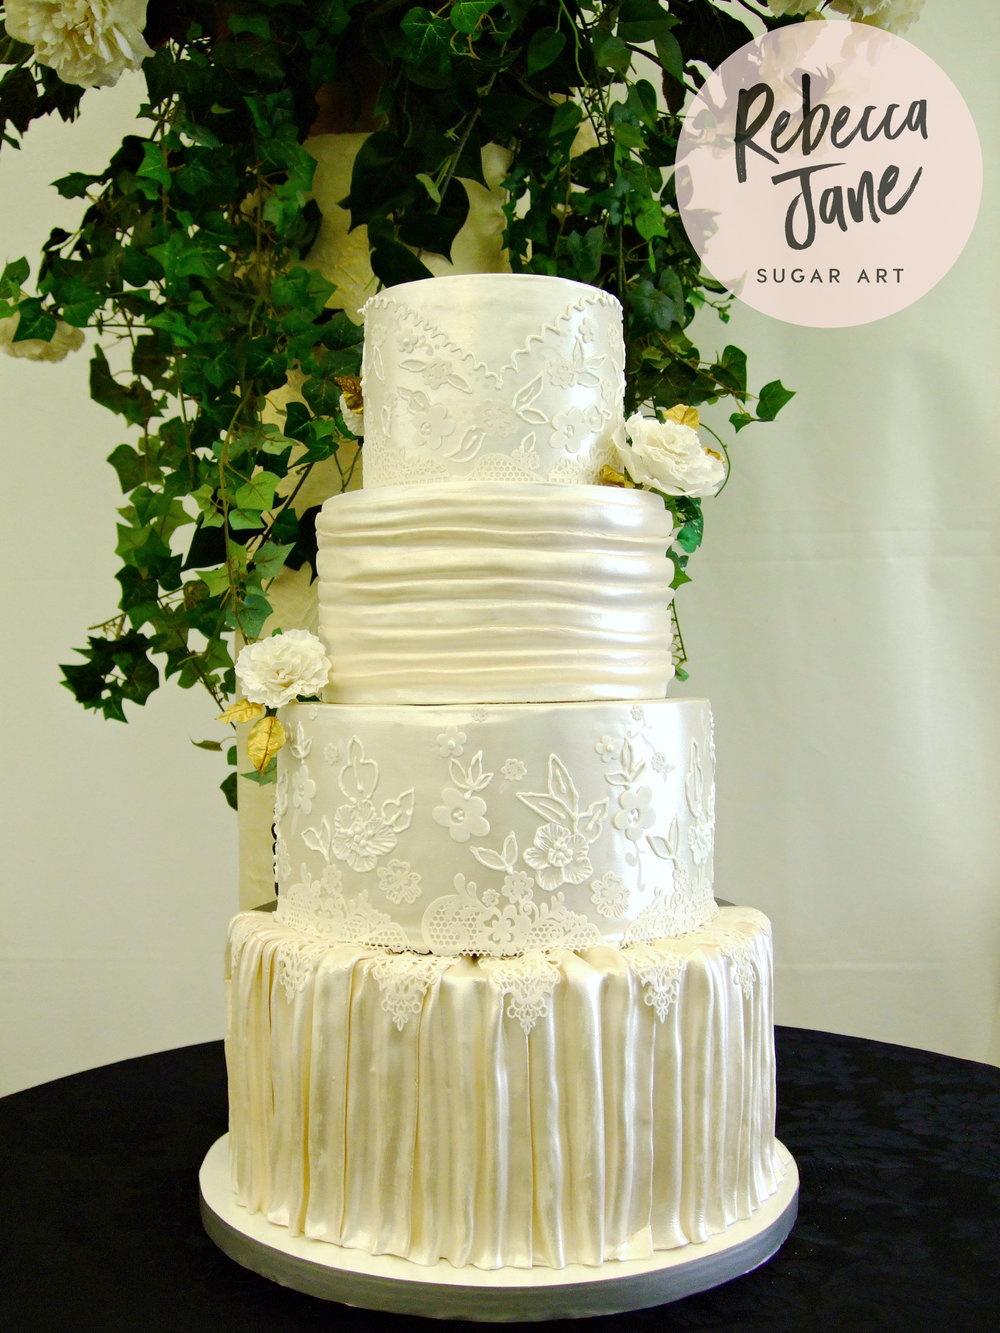 Rebecca Jane Sugar Art - two sided bride and groom wedding cake